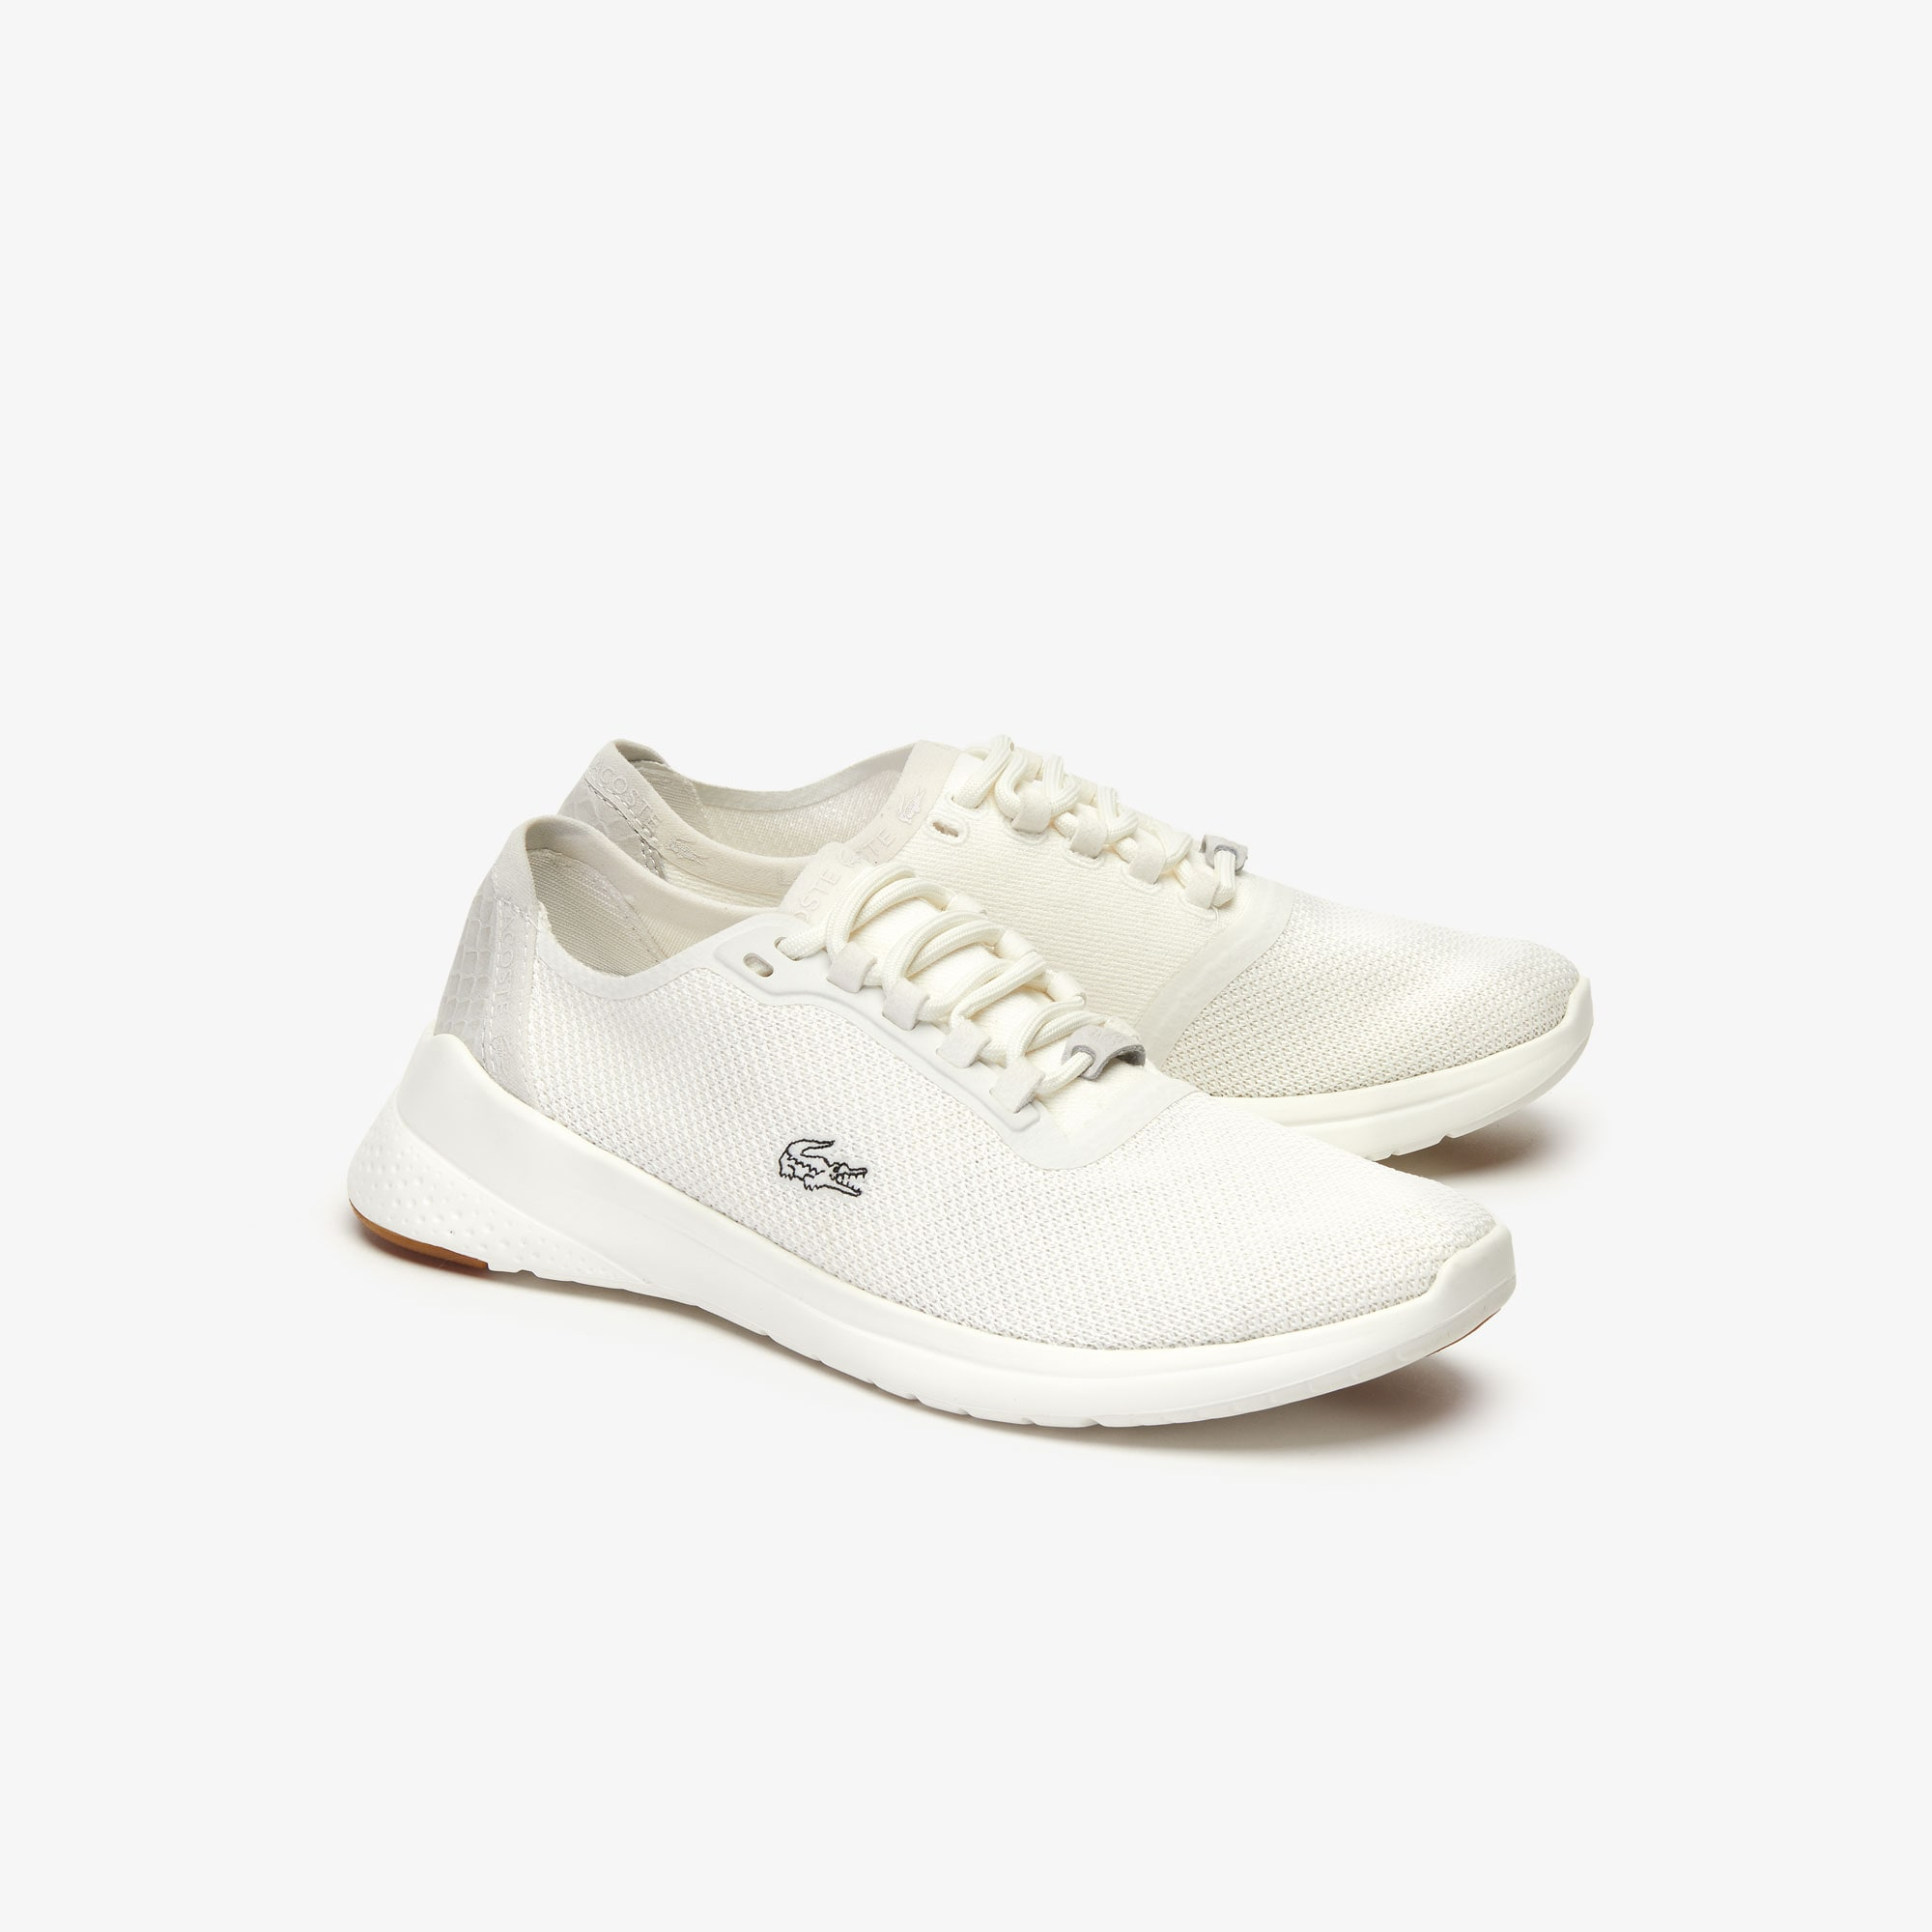 Women's LT Fit Textile and Leather Trainers